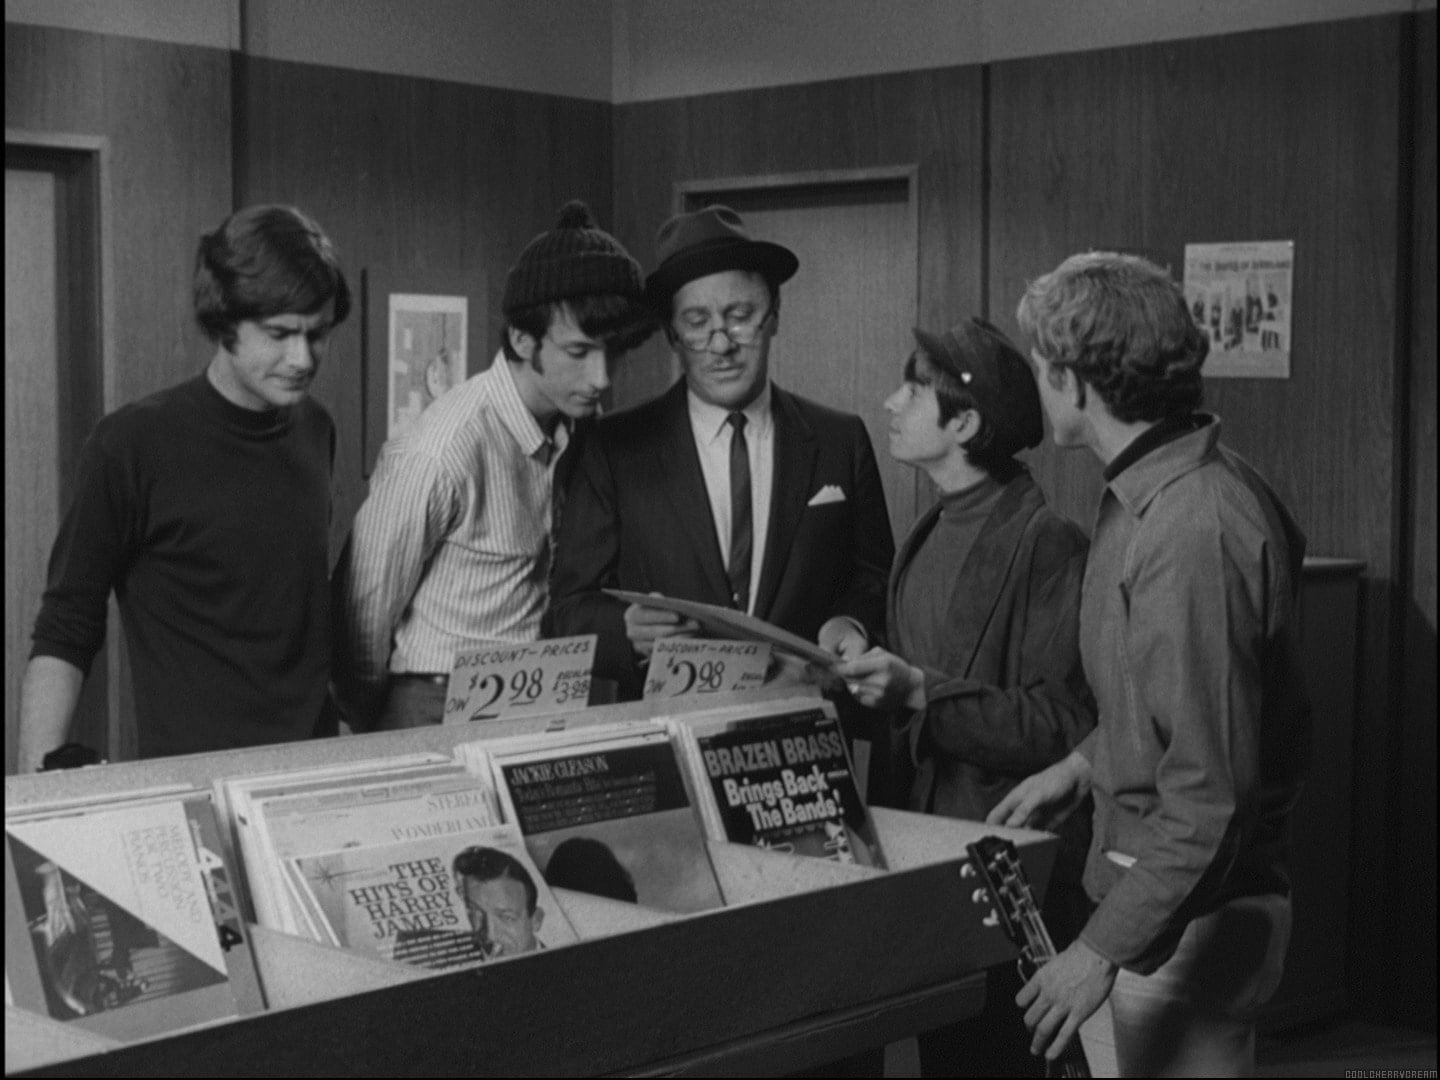 Dick Wilson Pictures | People | Sunshine Factory | Monkees Fan Site